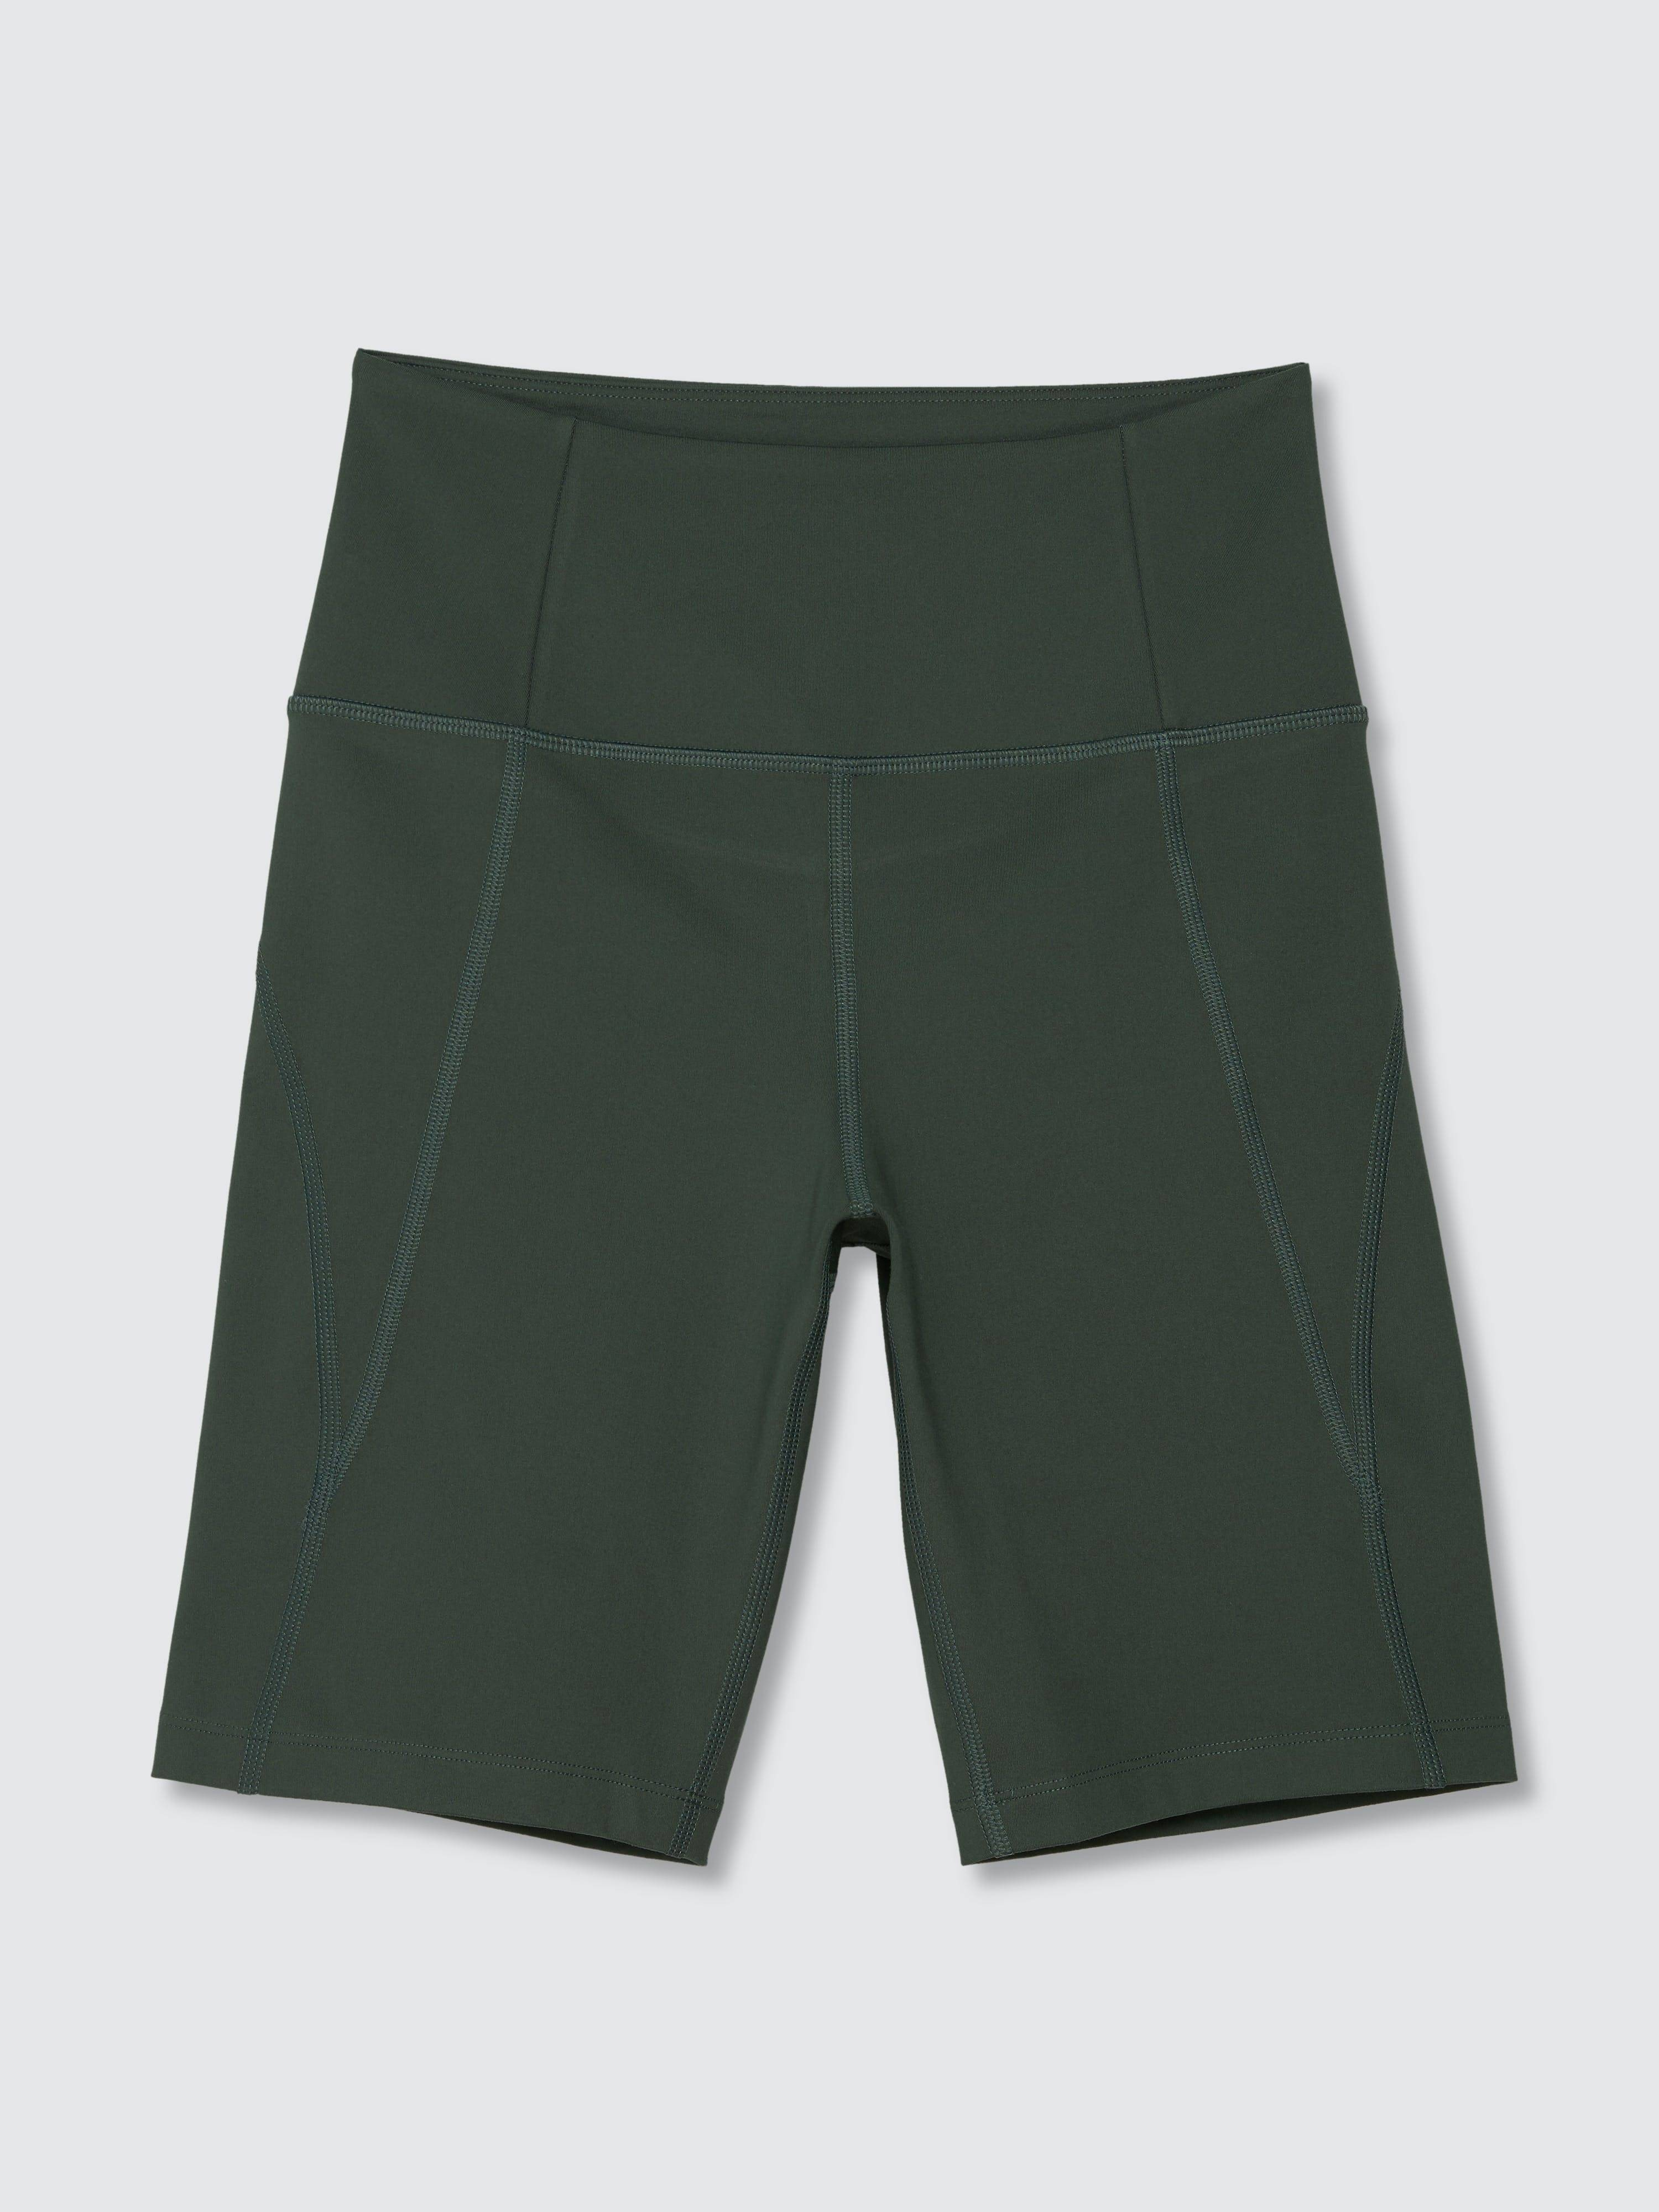 Girlfriend Collective High-Rise Bike Short - S - Also in: M, XS, XL, L  - Grey